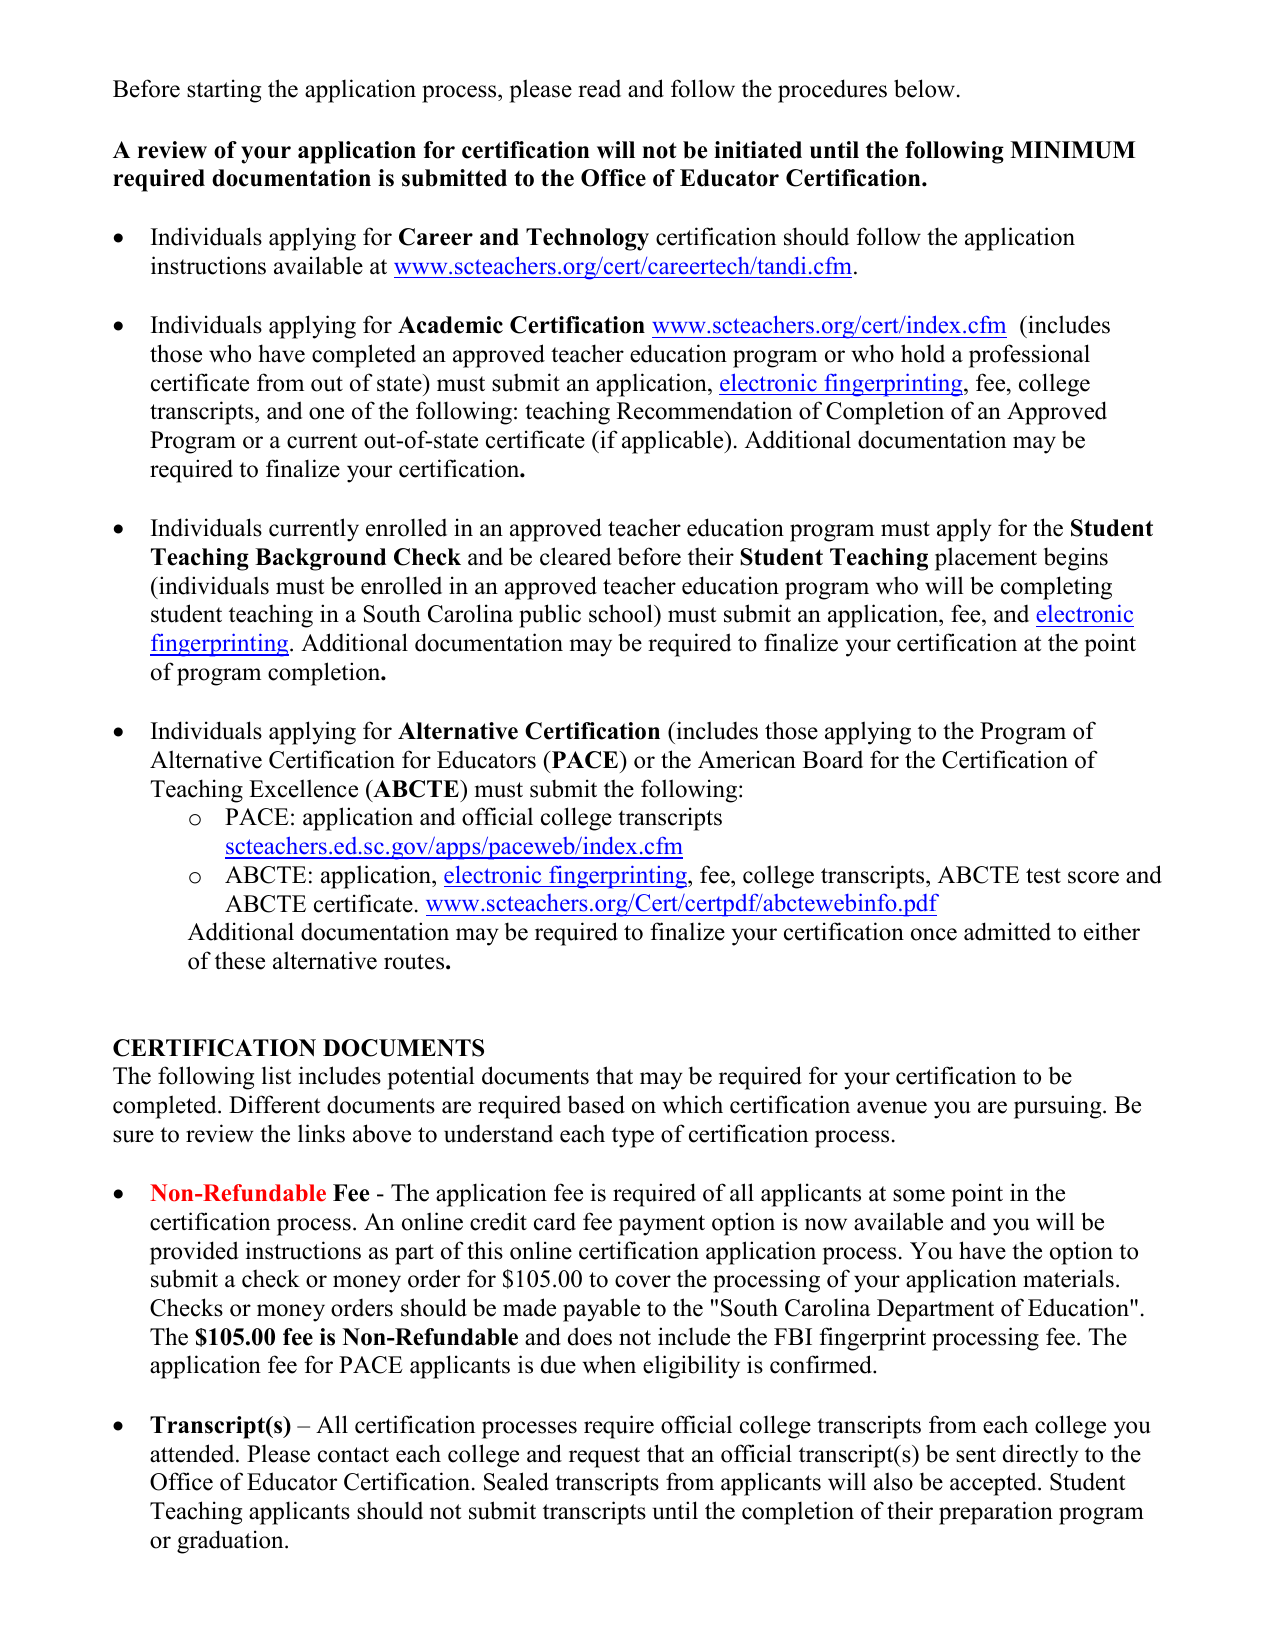 South Carolina Department Of Education Application For Educator